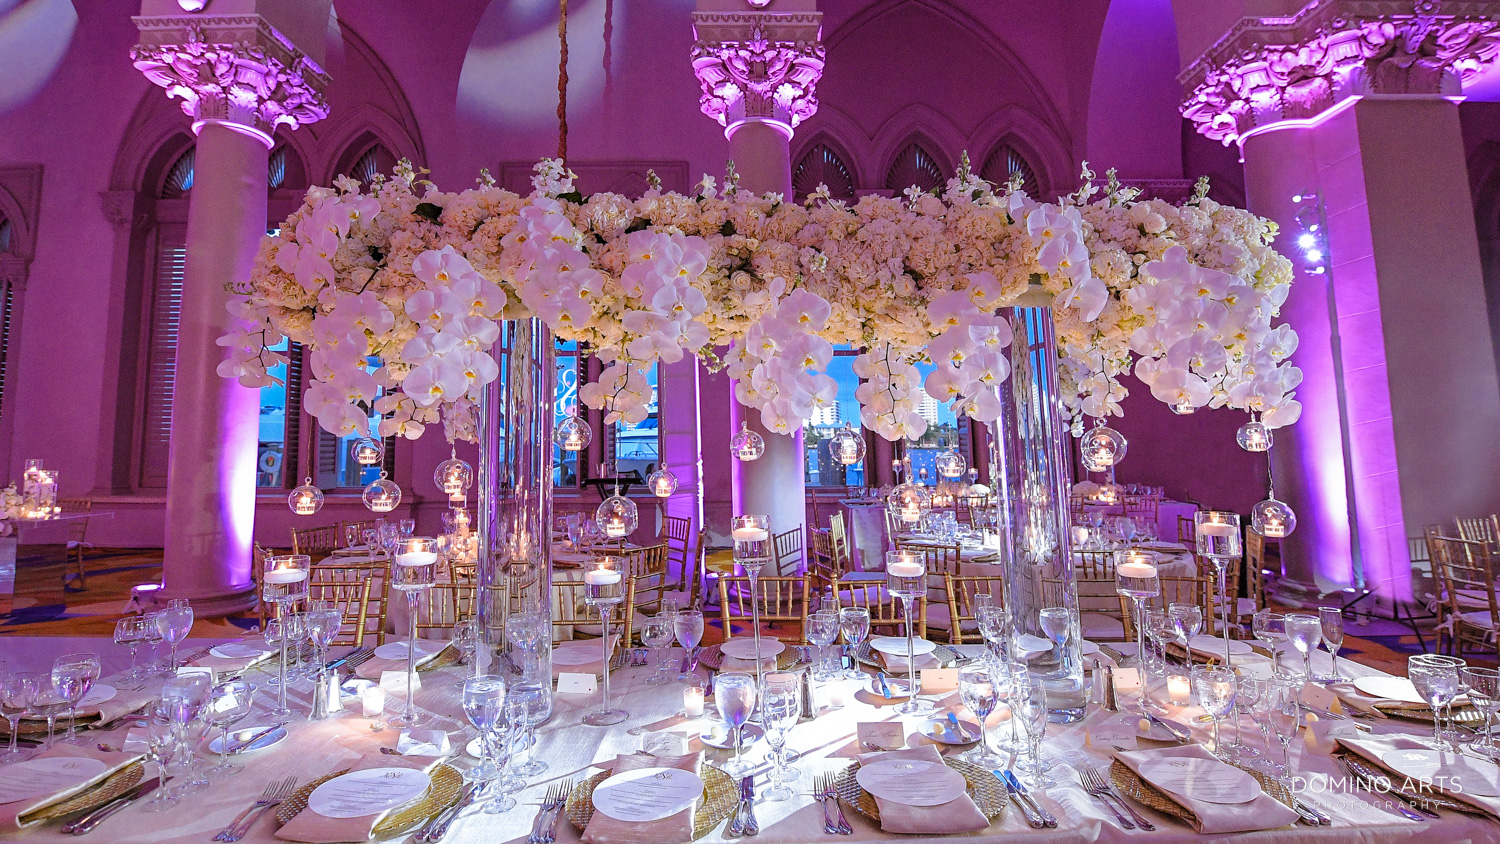 Luxury wedding décor at Boca Raton Resort